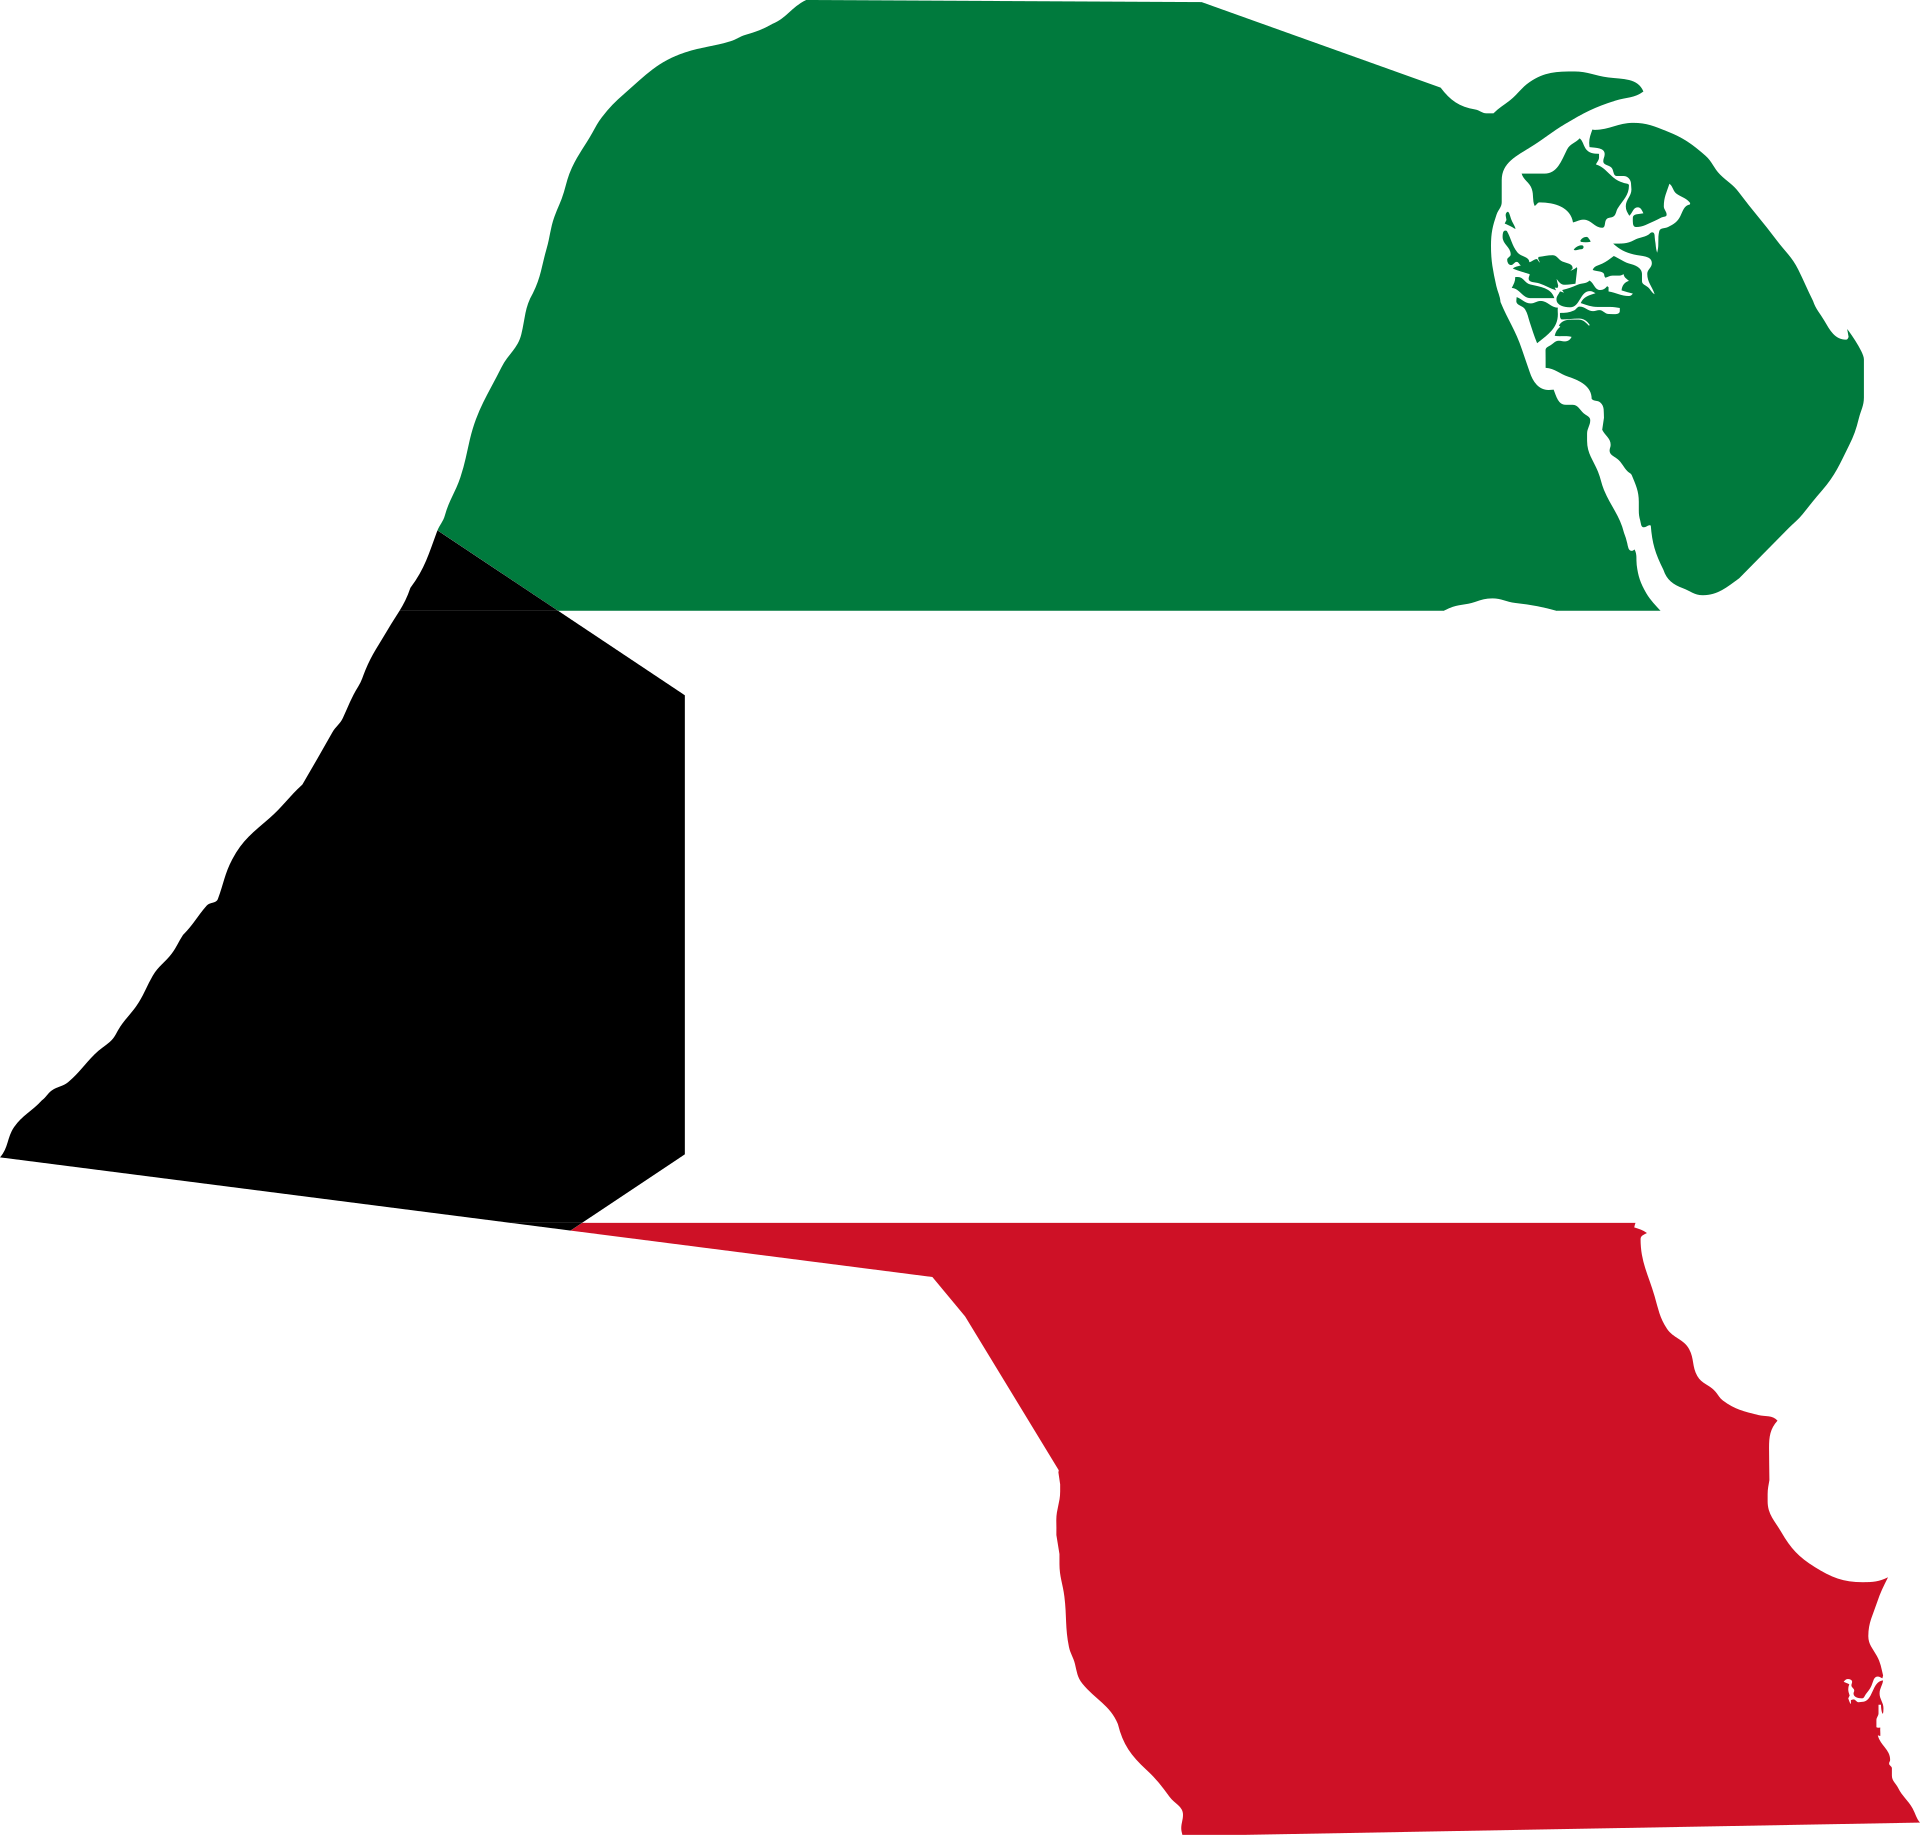 Kuwait Map Flag, Polluted Countries